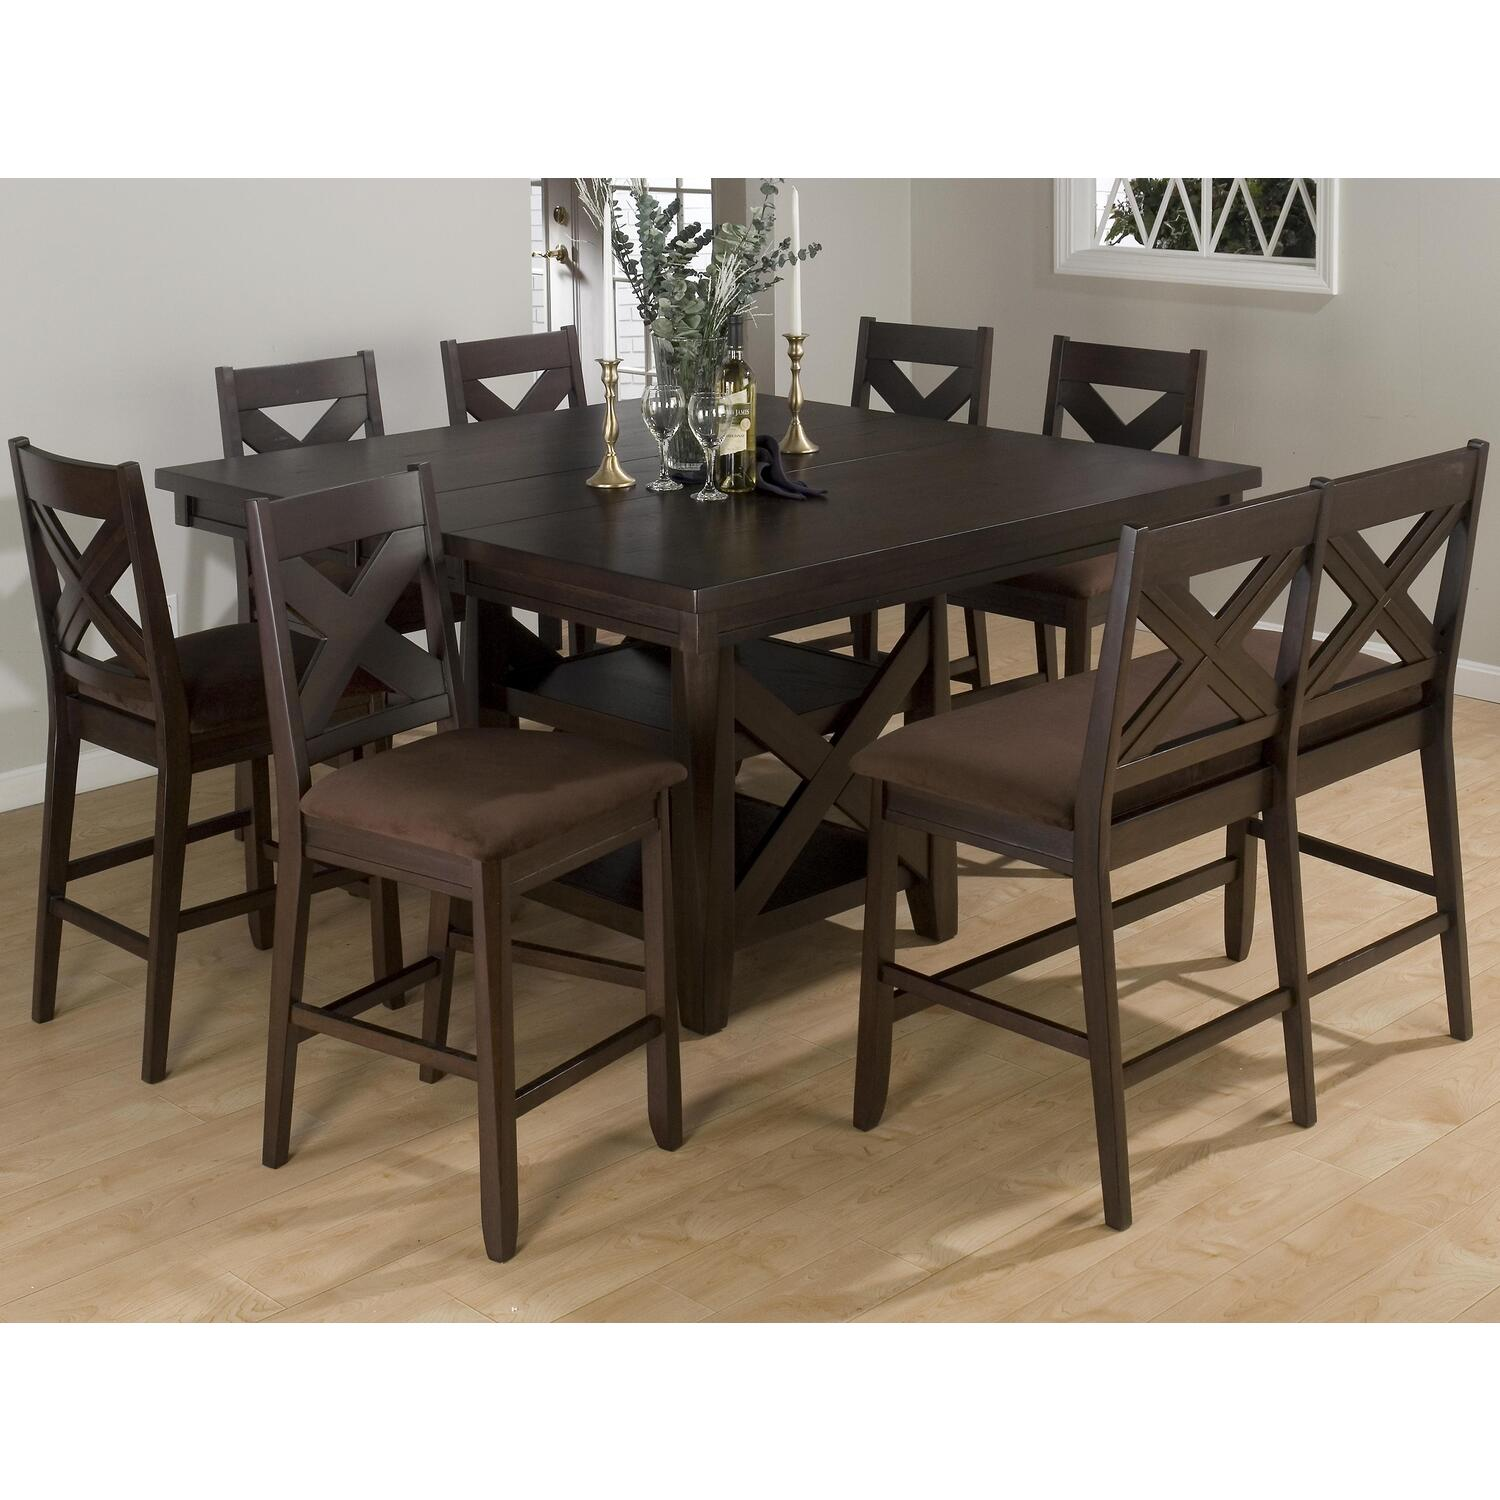 jofran counter height 9 piece dining set by oj commerce 453 chs9pc